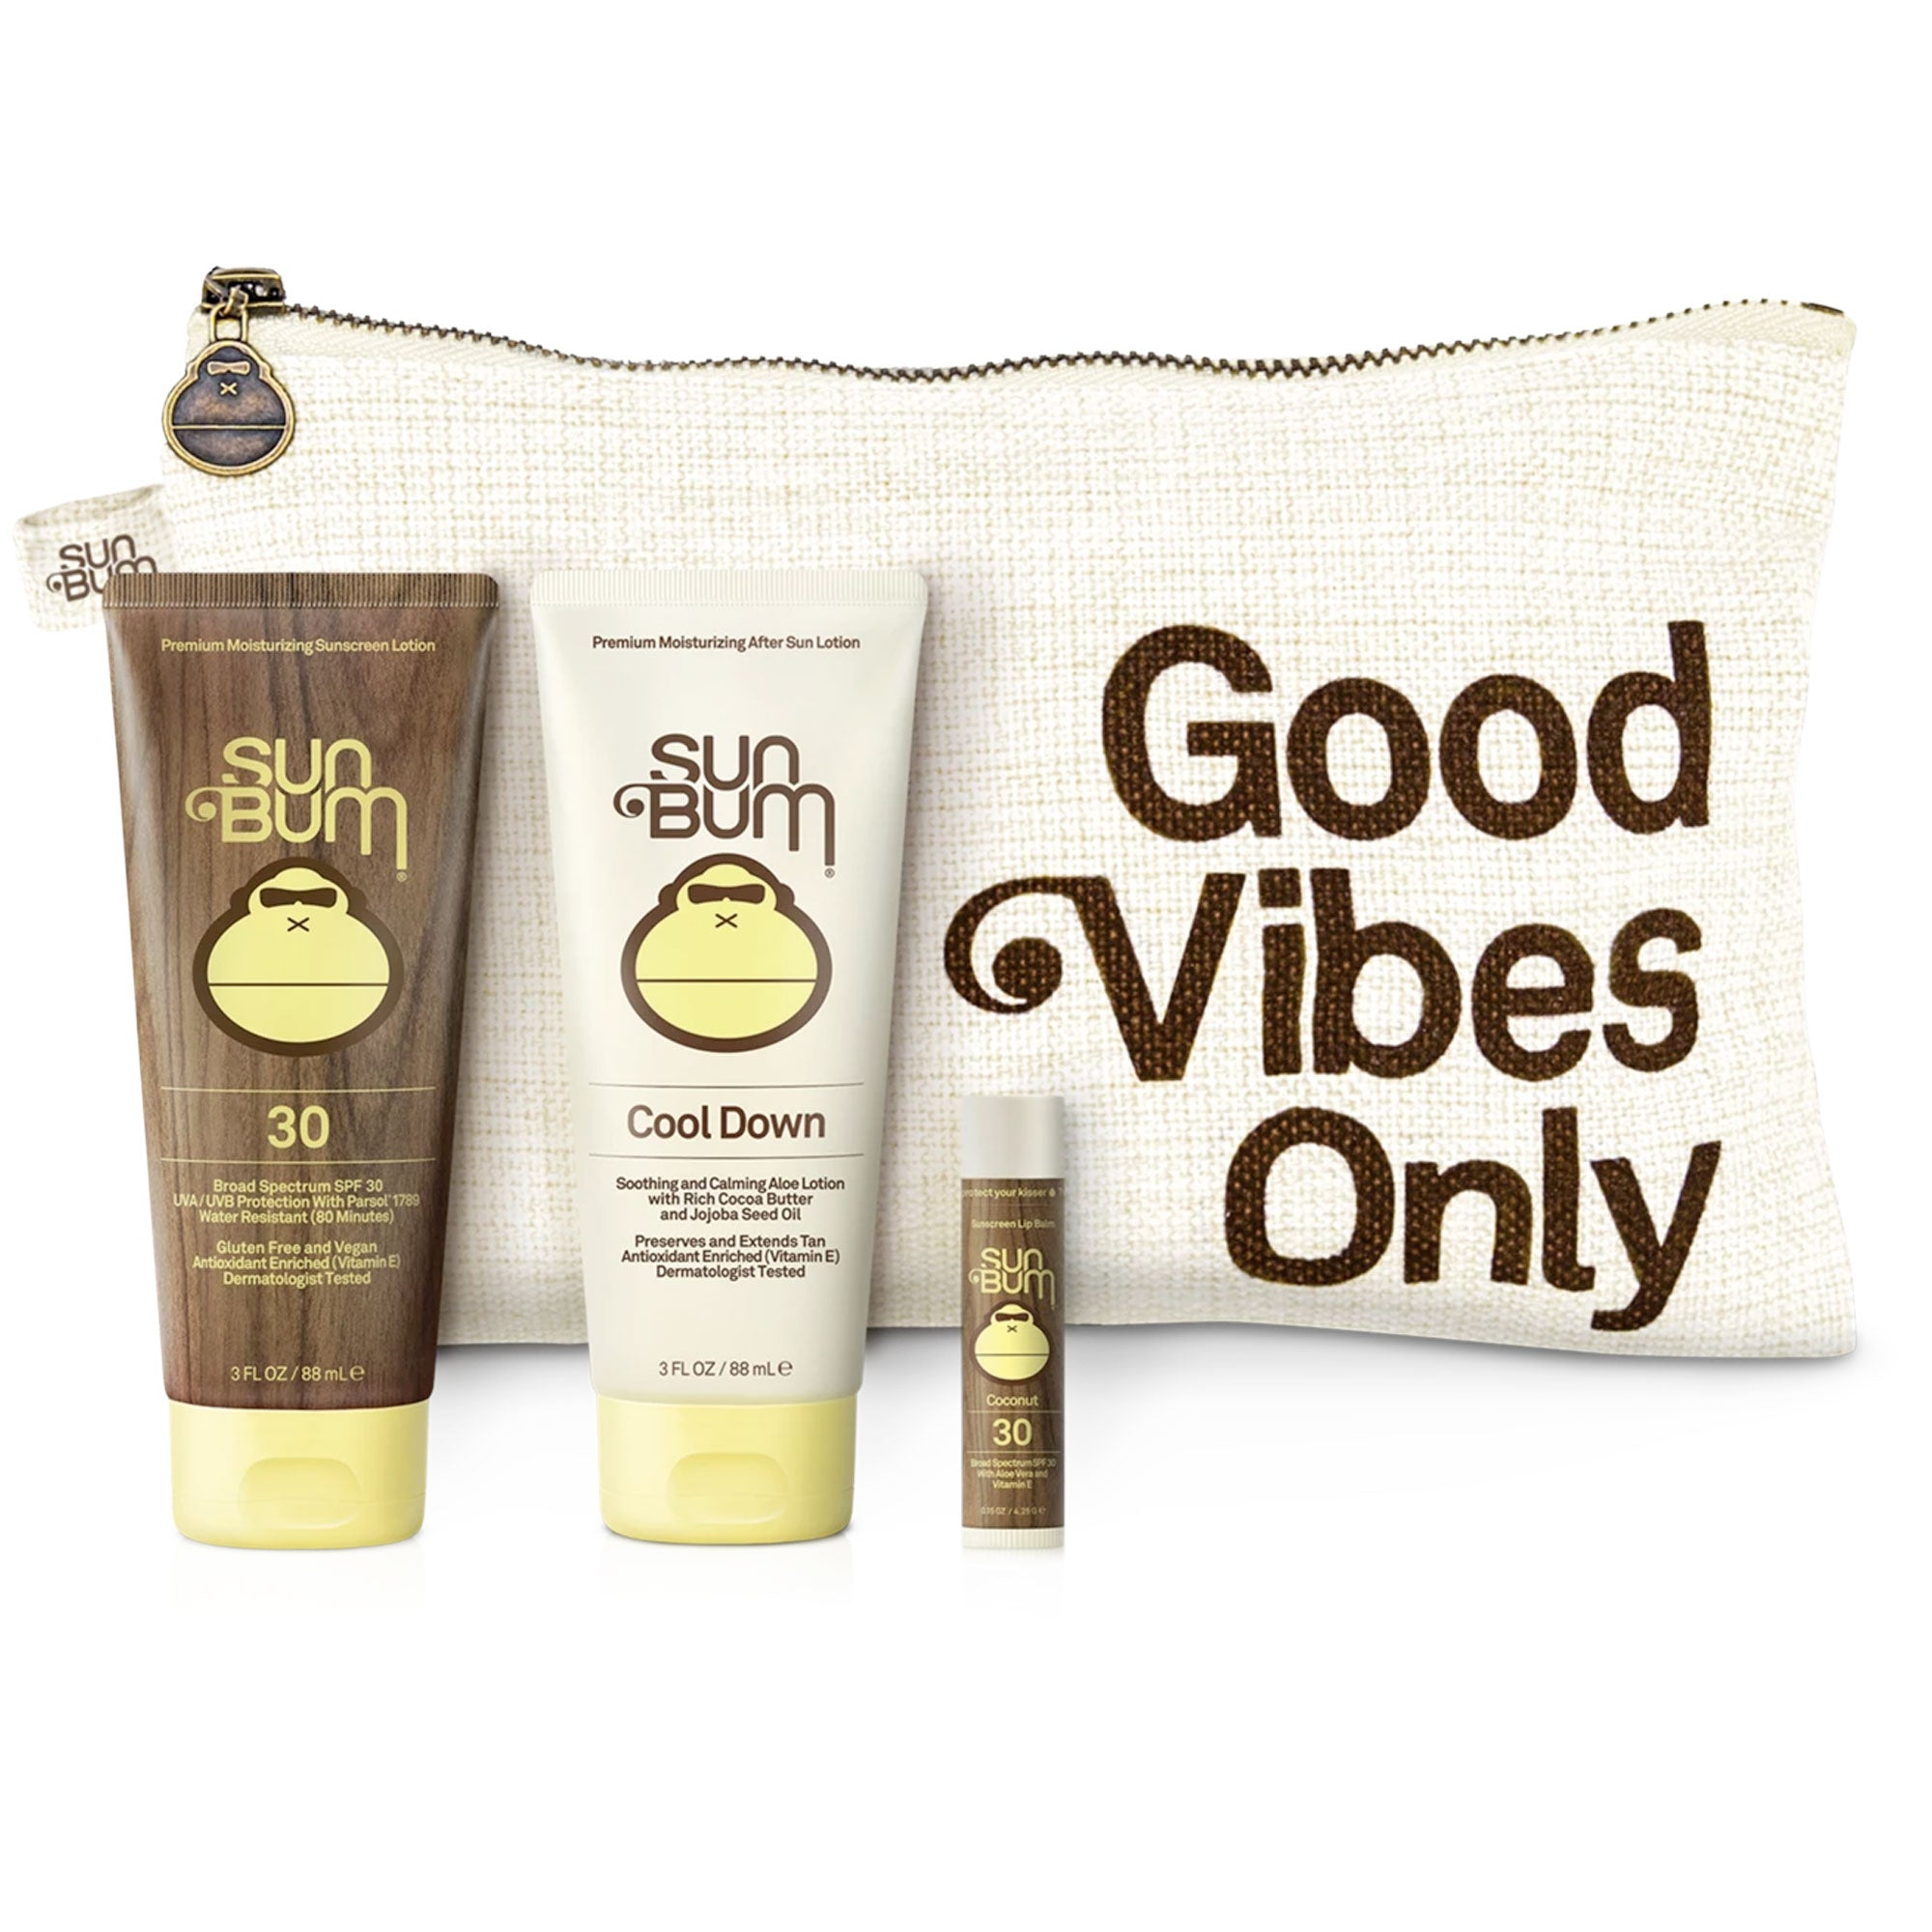 Sun Bum Day Tripper Travel Sun Care Kit